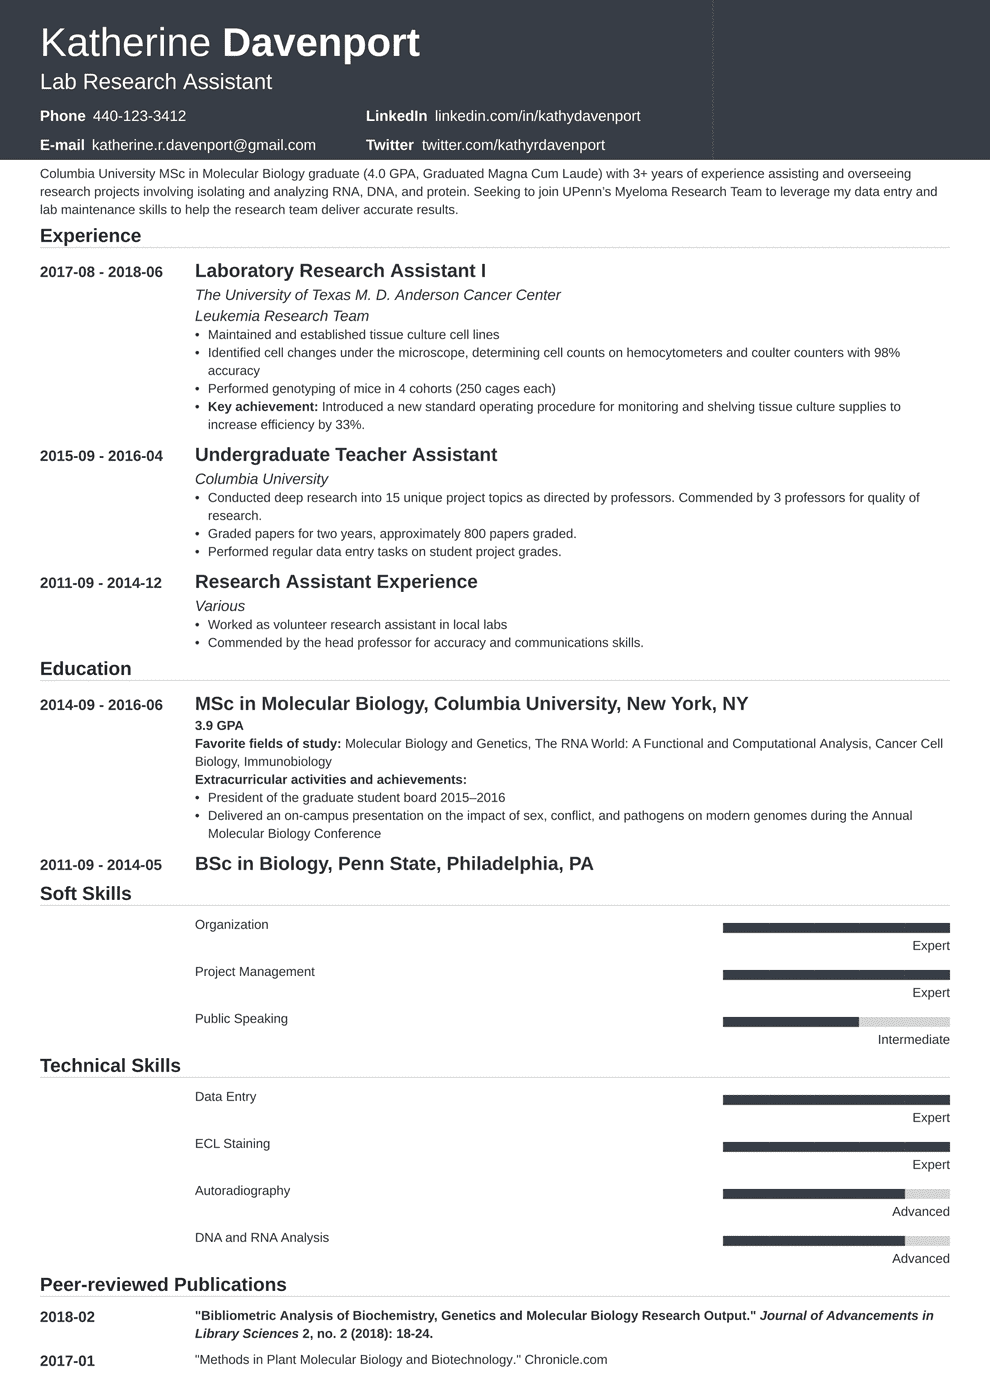 Social Worker Resume with No Experience Beautiful Research